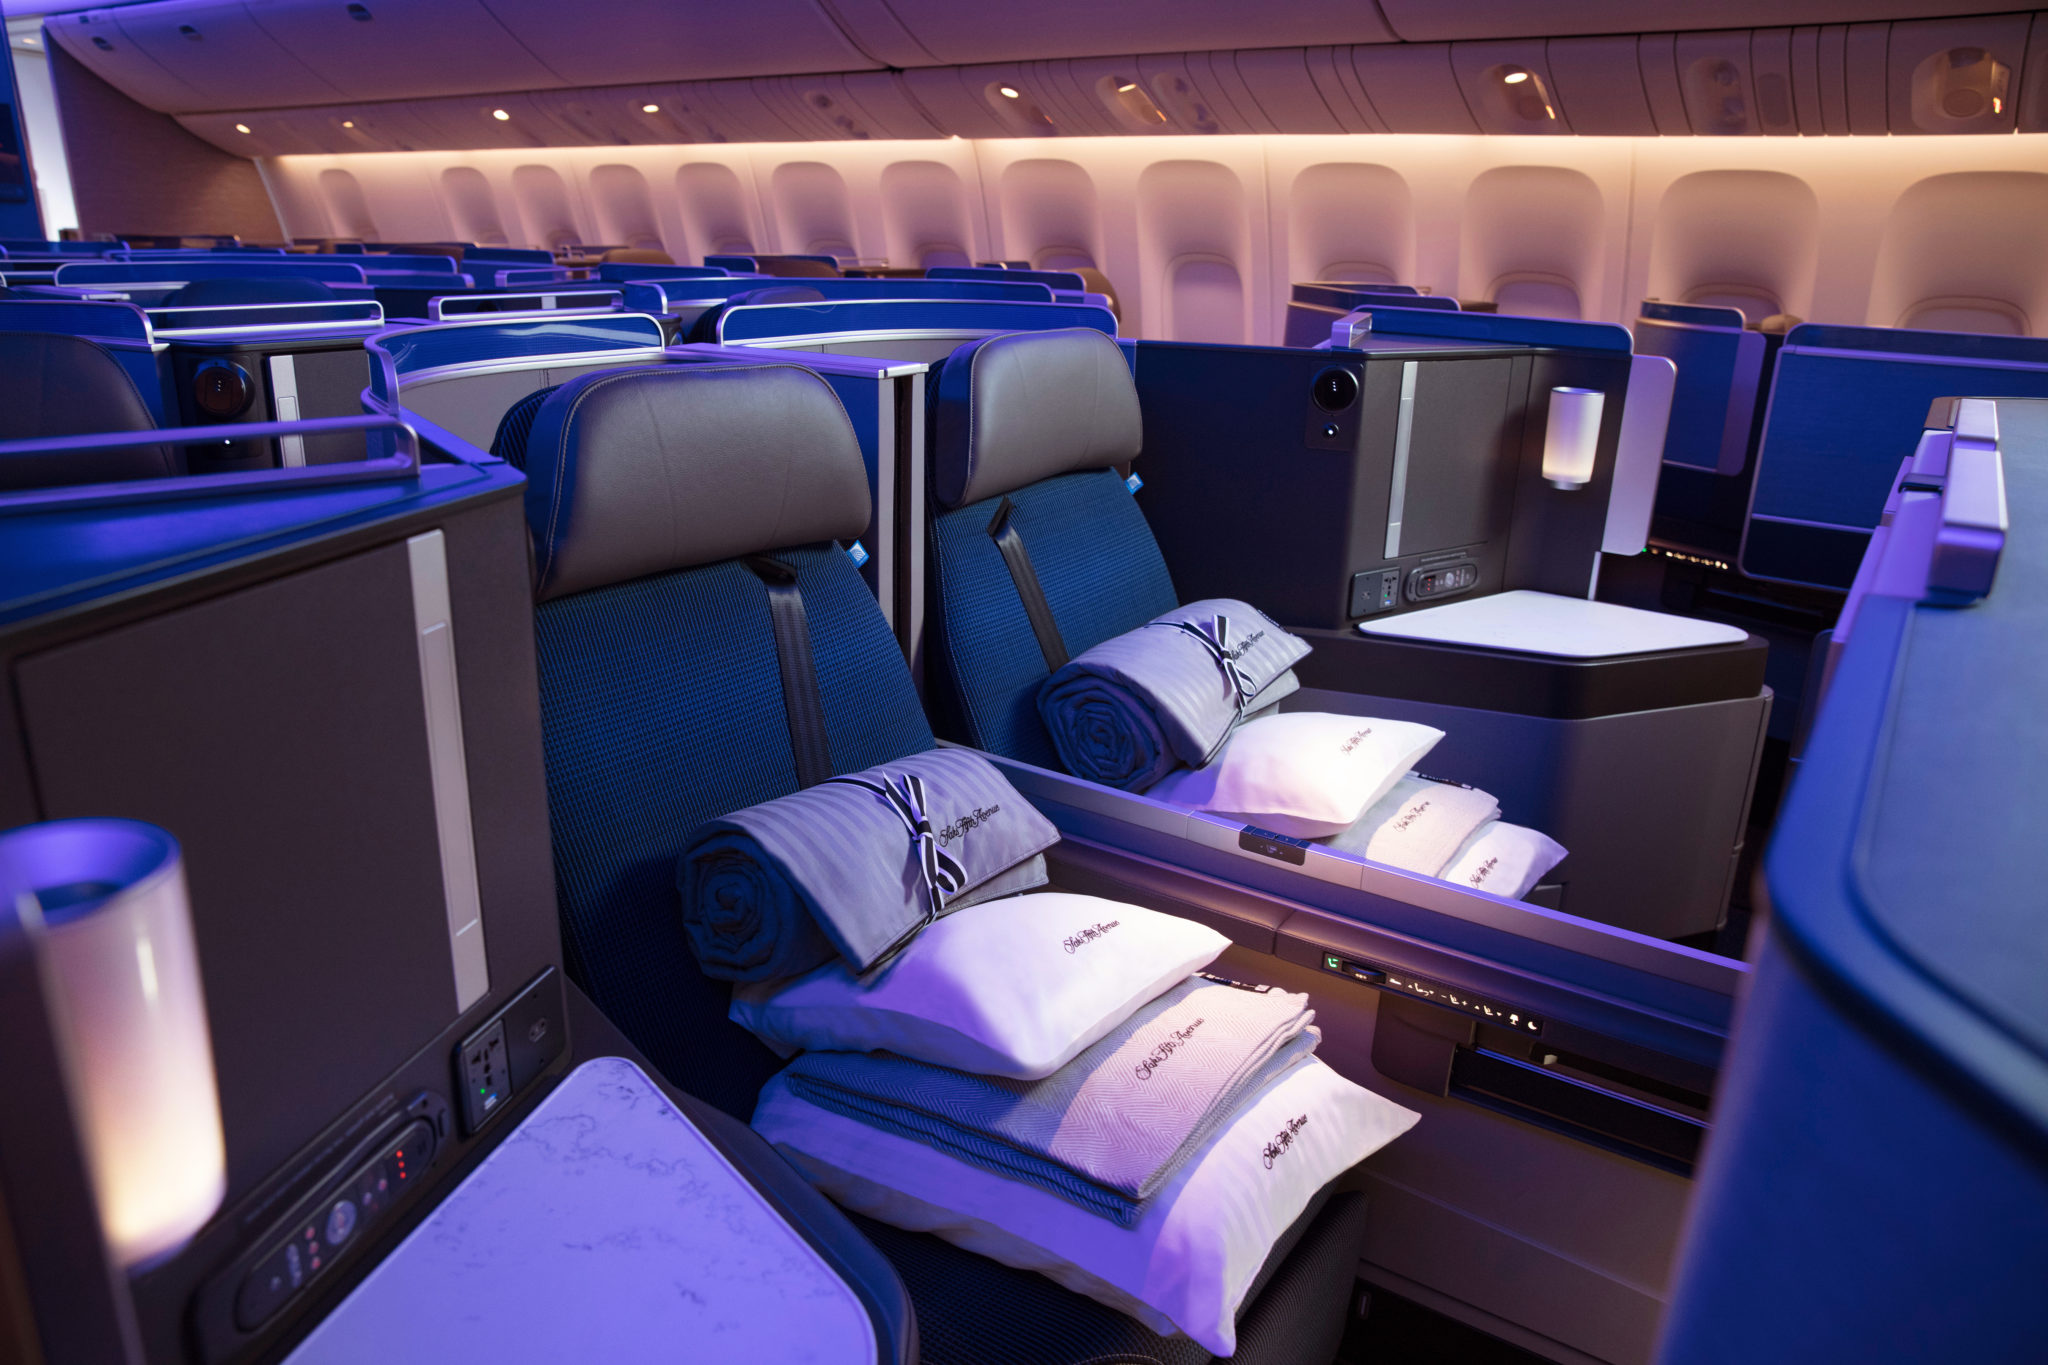 United Polaris Seat Amenities Routes Lounges More 2020